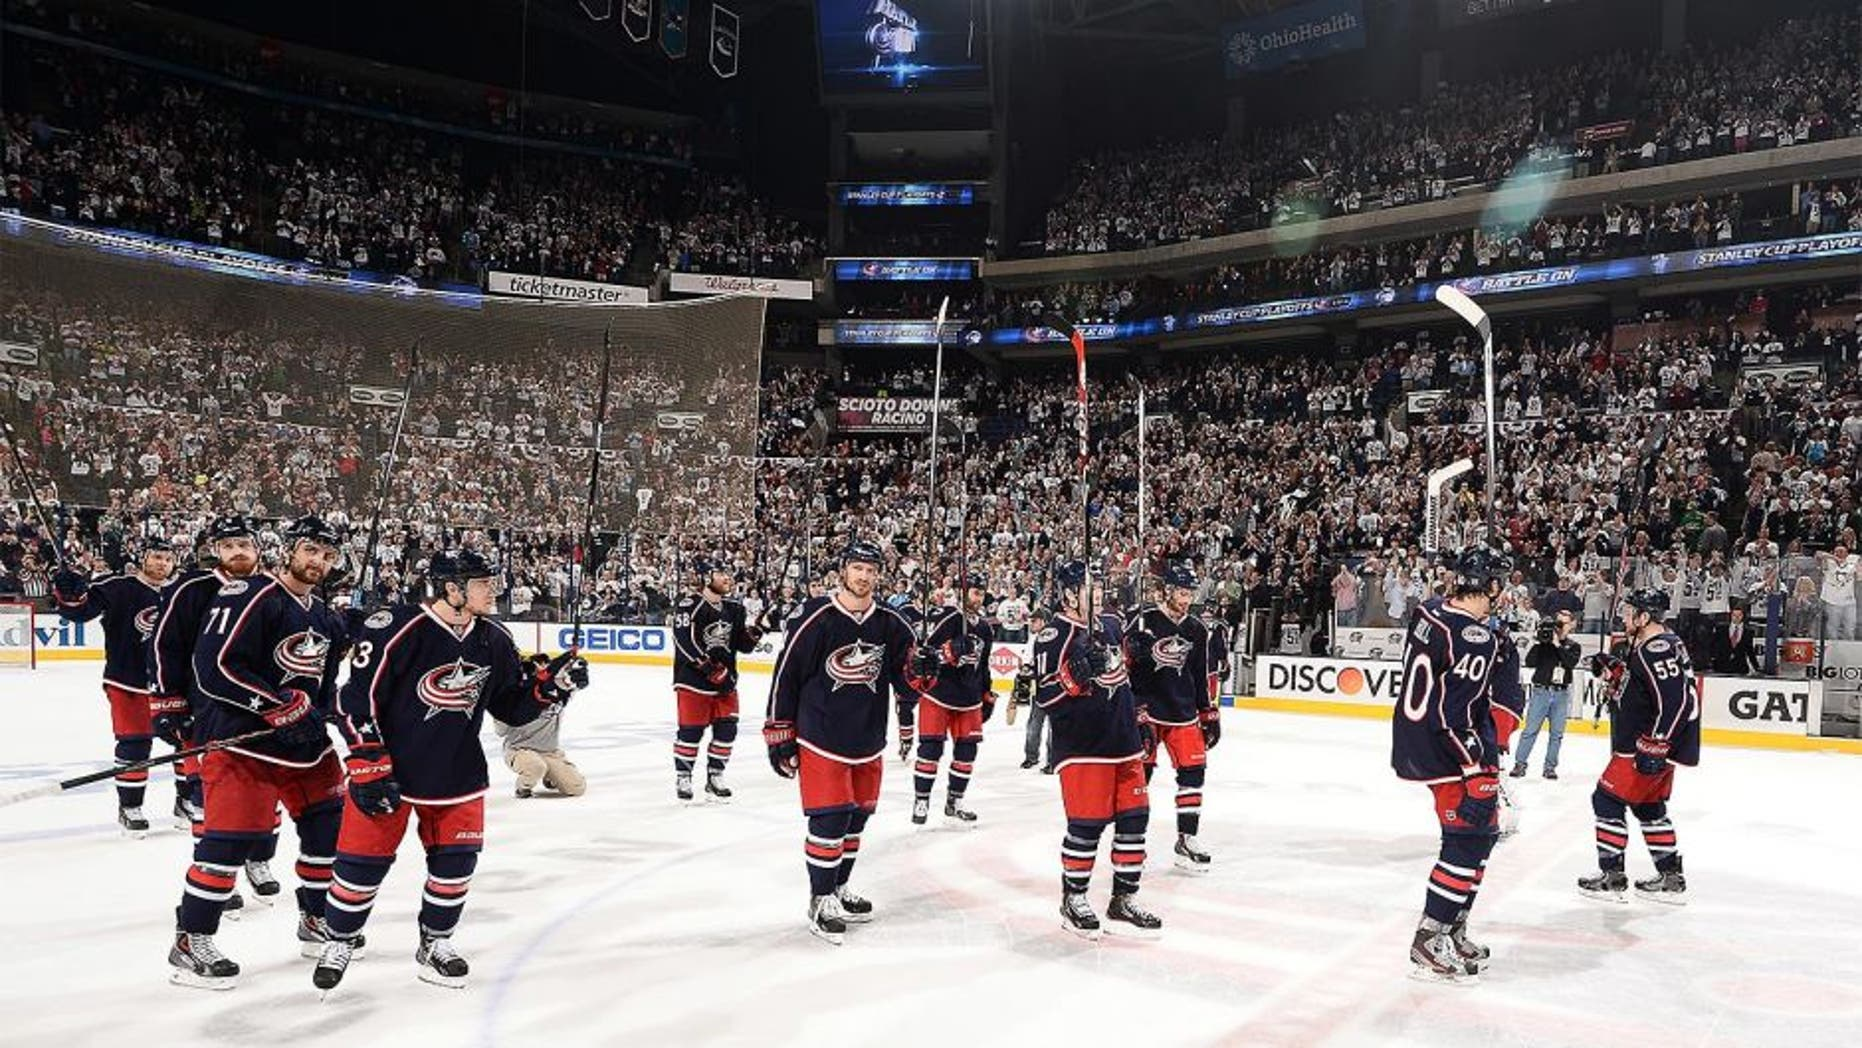 COLUMBUS, OH - APRIL 28: The Columbus Blue Jackets salute their fans after Game Six of the First Round of the 2014 Stanley Cup Playoffs on April 28, 2014 at Nationwide Arena in Columbus, Ohio. Pittsburgh defeated Columbus 4-3 to clinch the first round series. (Photo by Jamie Sabau/NHLI via Getty Images)